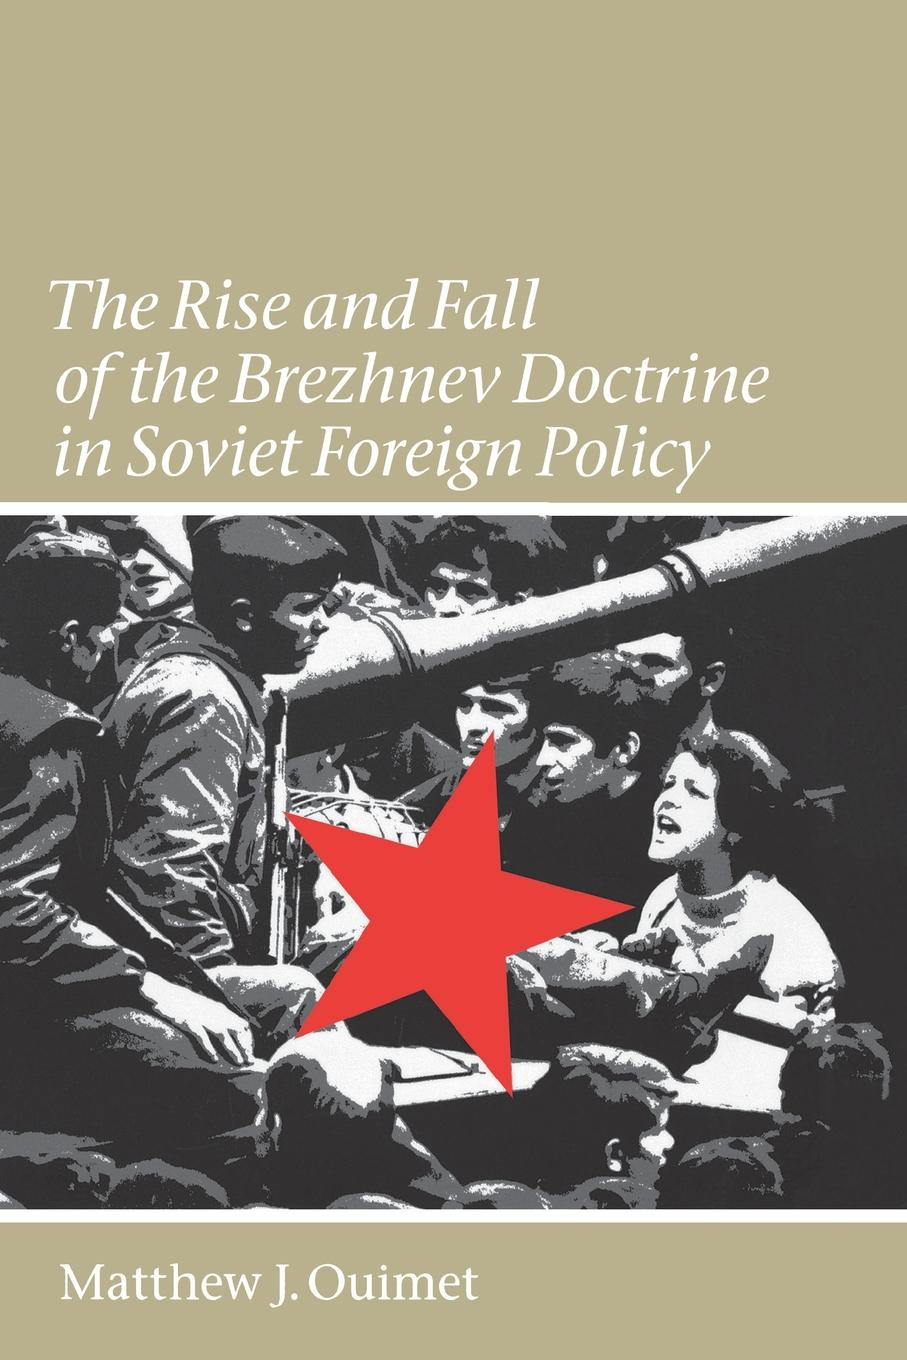 лучшая цена Matthew J. Ouimet The Rise and Fall of the Brezhnev Doctrine in Soviet Foreign Policy